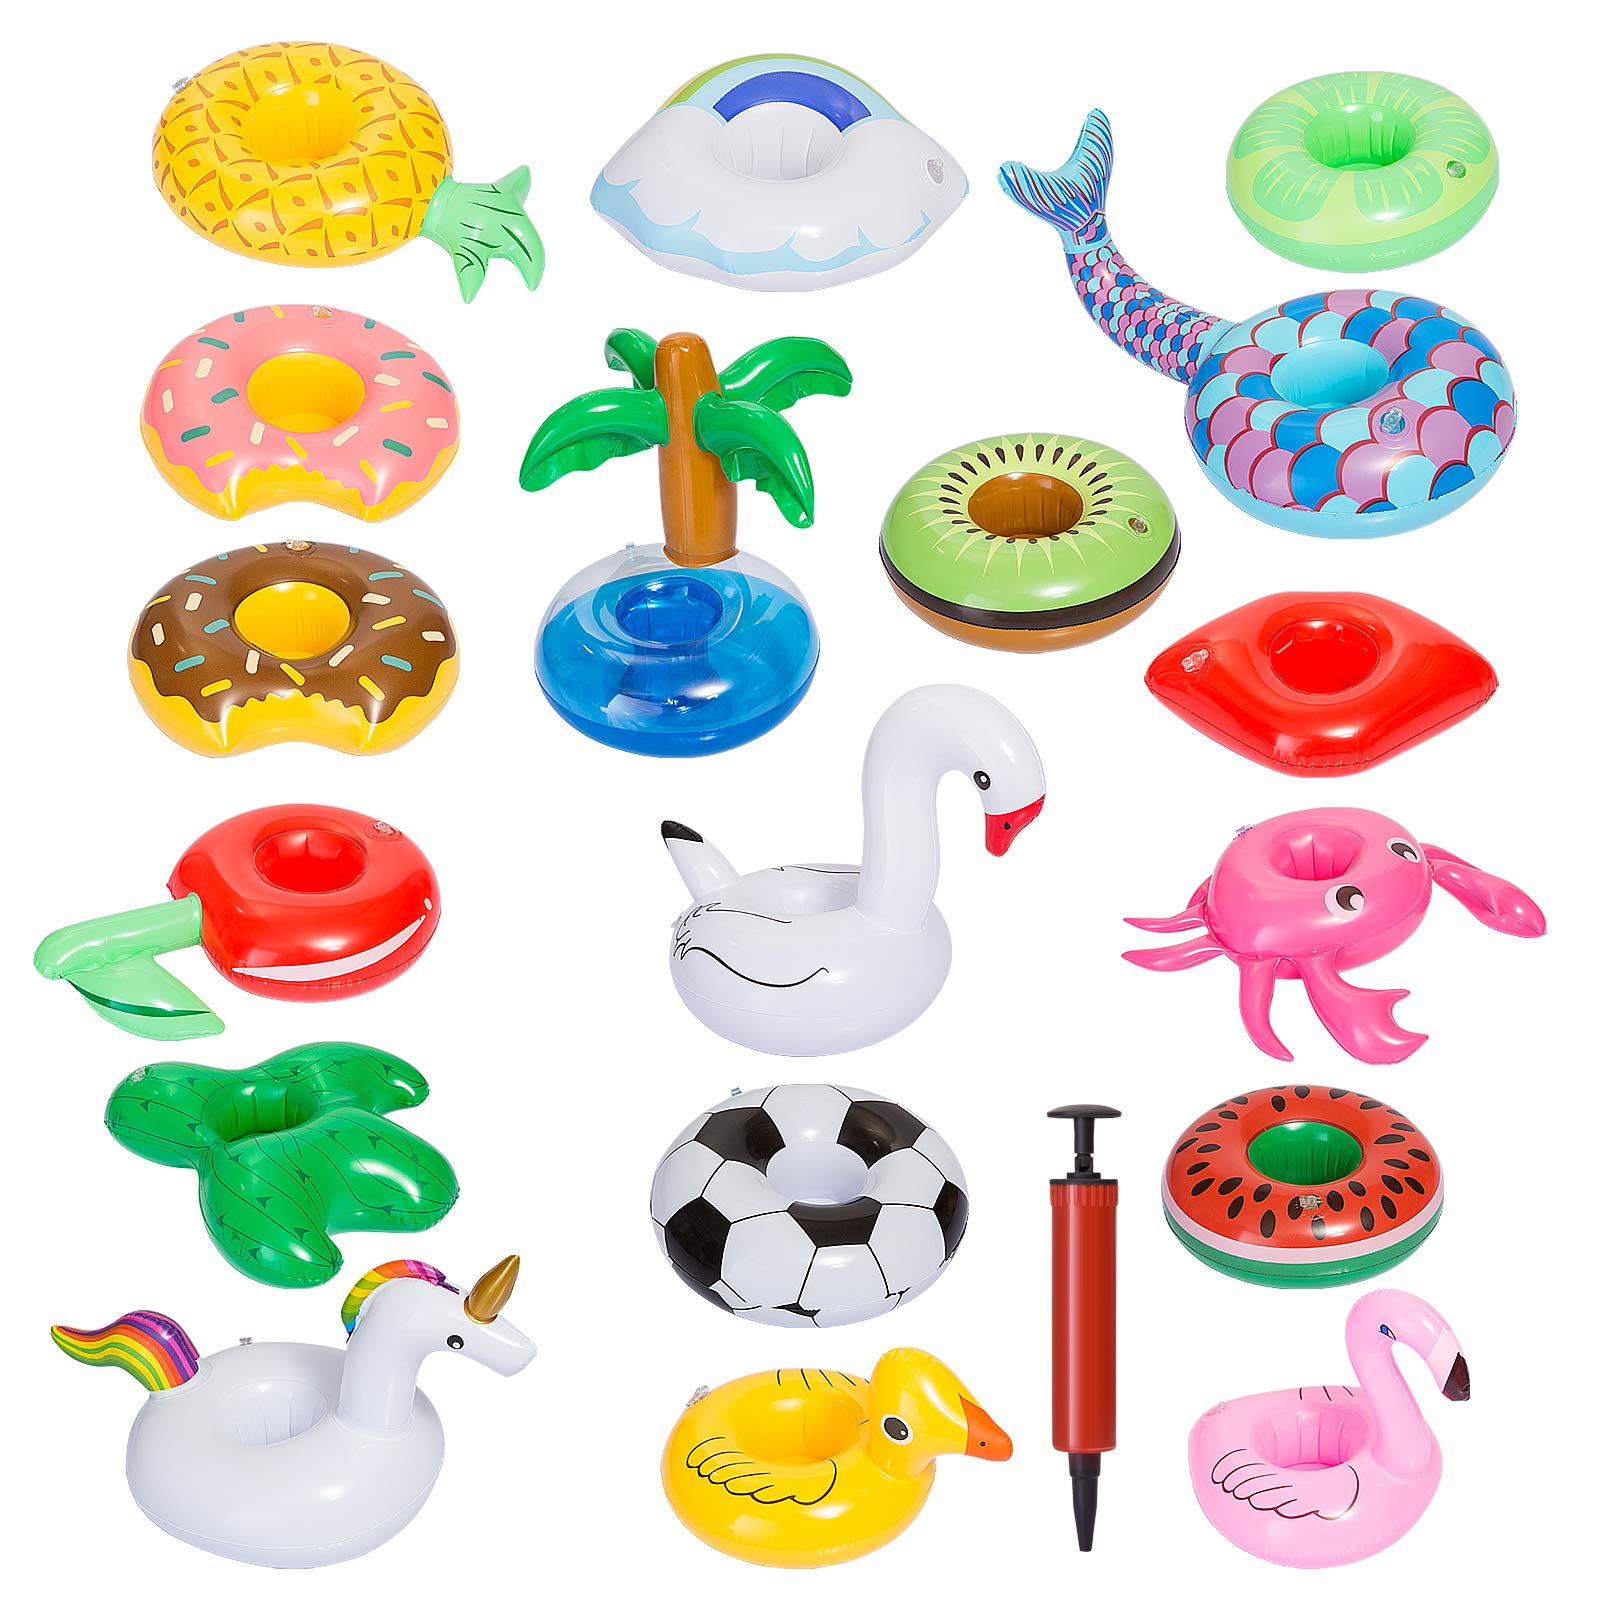 GWHOLE 18 Pack of Inflatable Drink Holders with Air Pump, Drink Floats Inflatable Cup Coasters for Kids Toys and Pool Party by GWHOLE